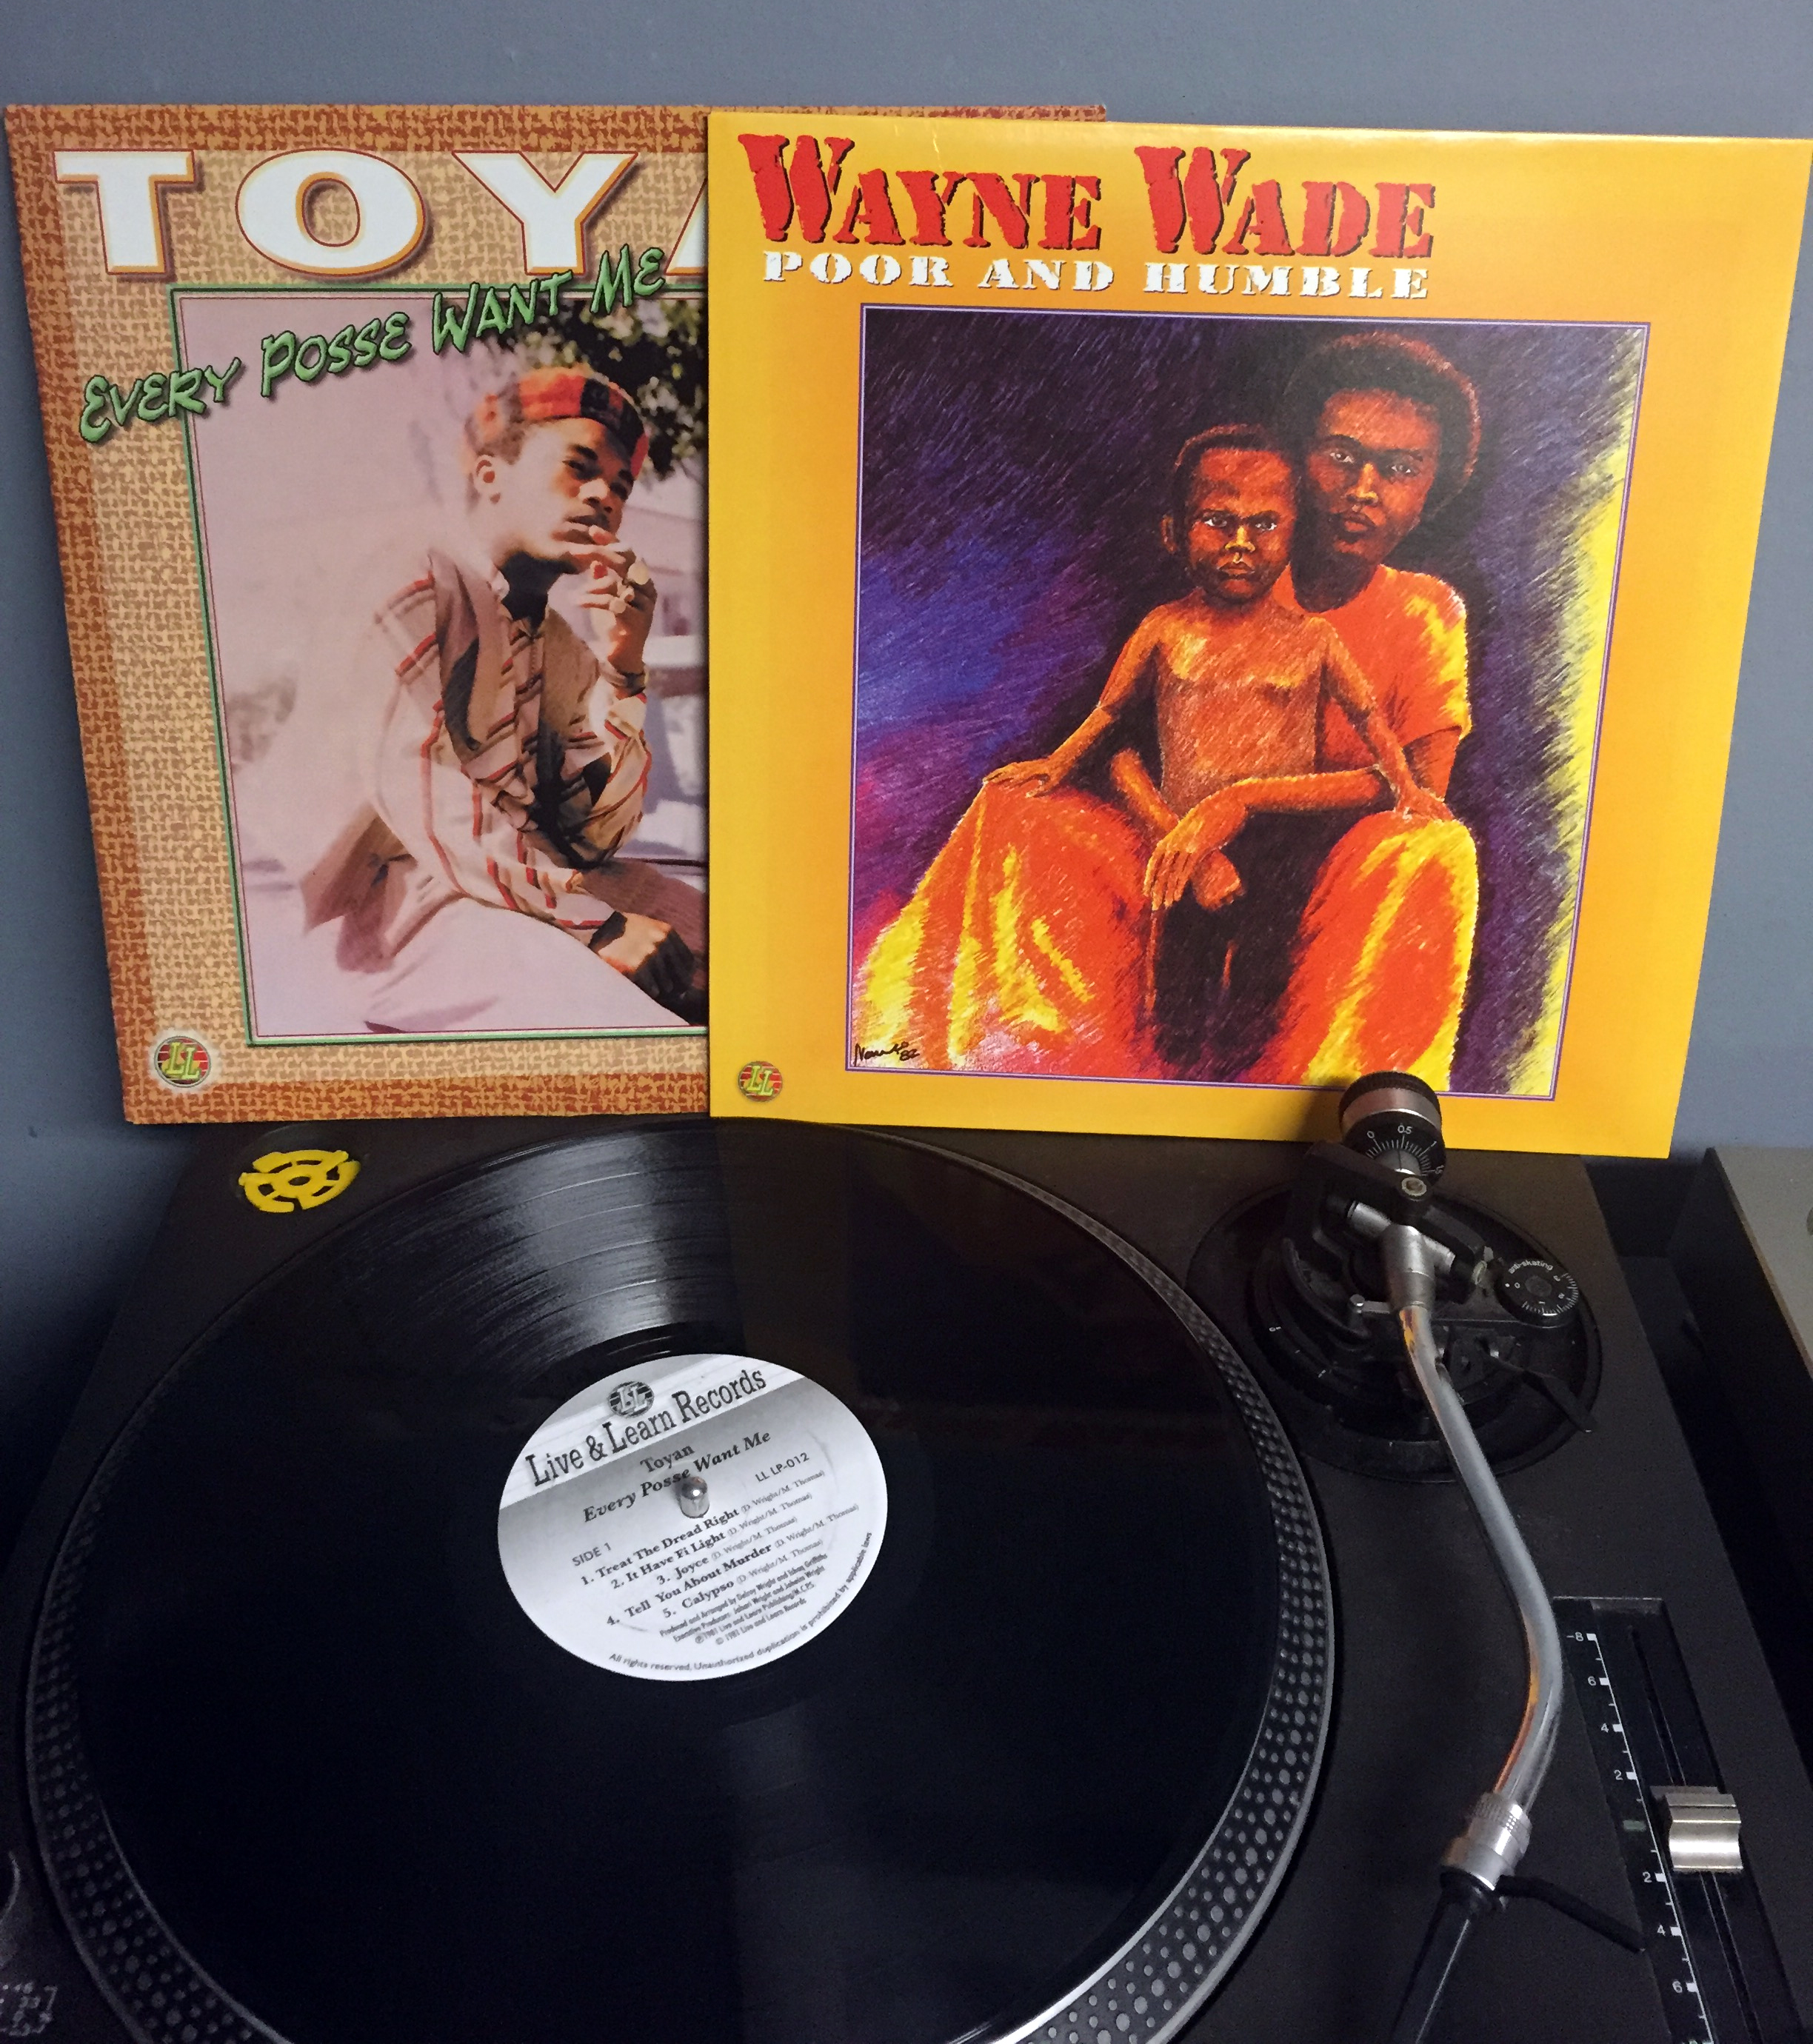 TOYAN -  Every Posse Want Me &  WAYNE WADE  - Poor and Humble   Label: Live and Learn Records [ @ Discogs ]